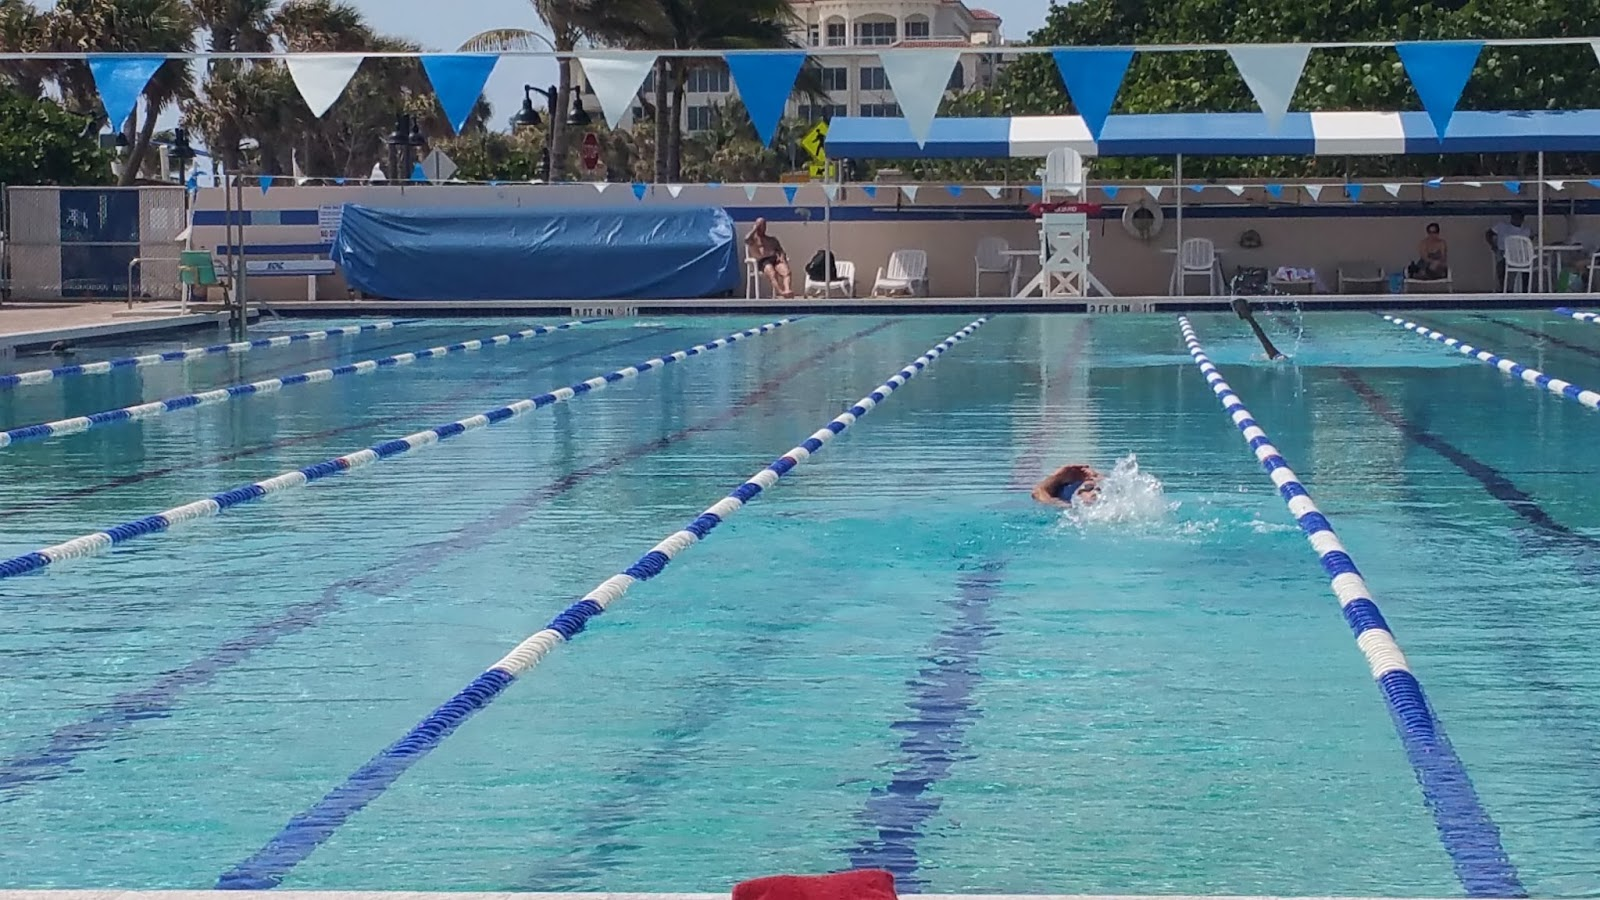 Lake Worth Beach Pool | The best beaches in the world on